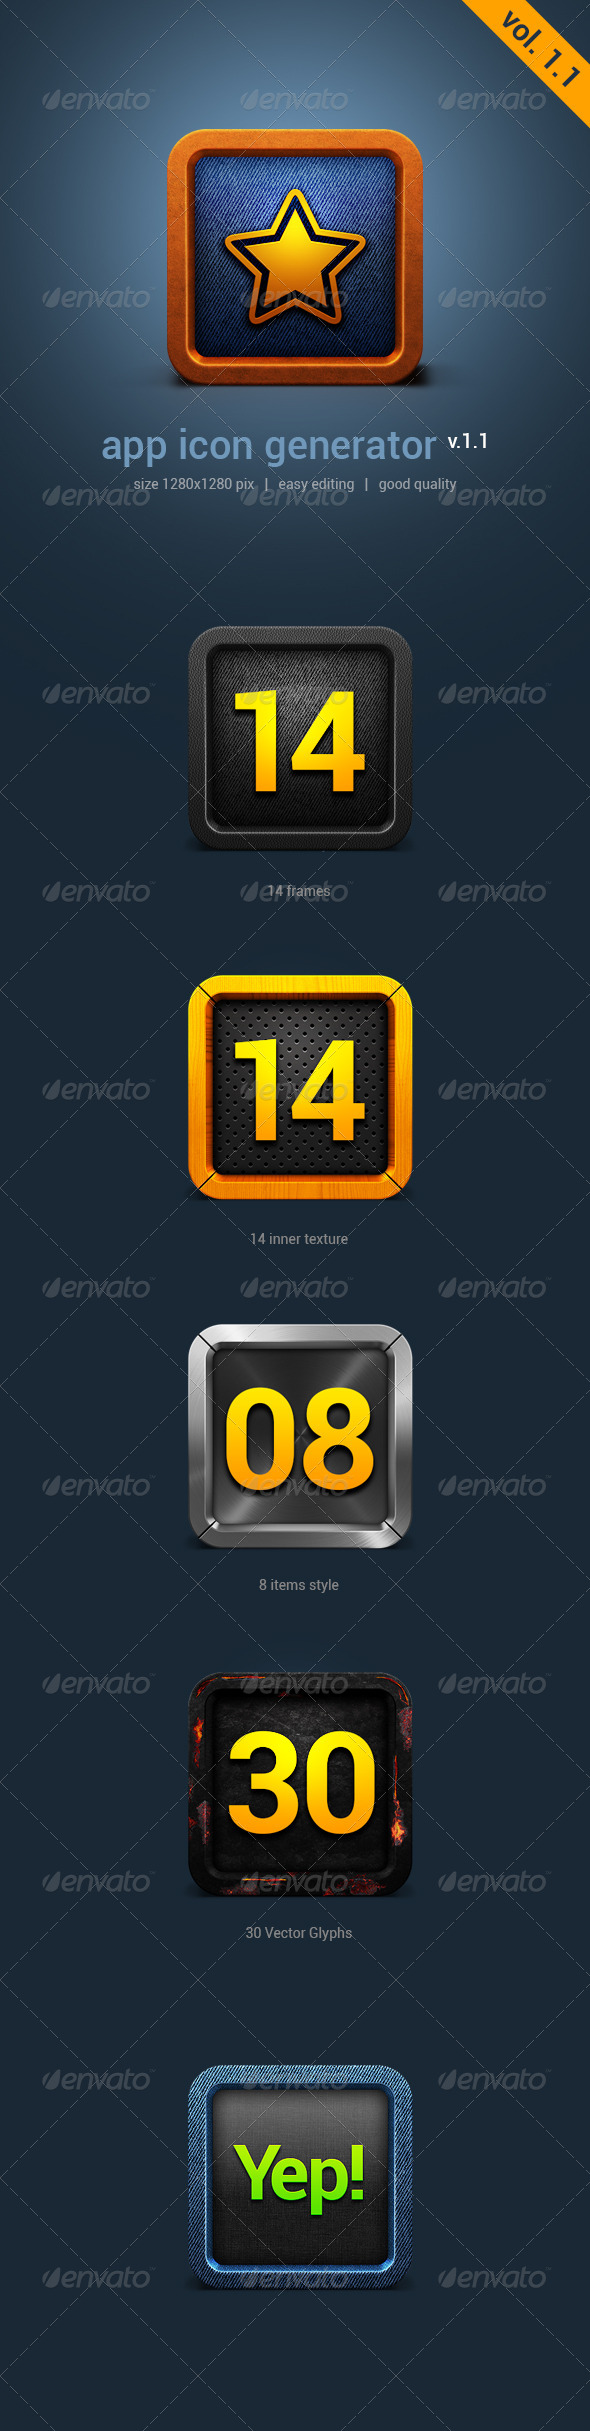 GraphicRiver App Icon Generator V1.0 4394972